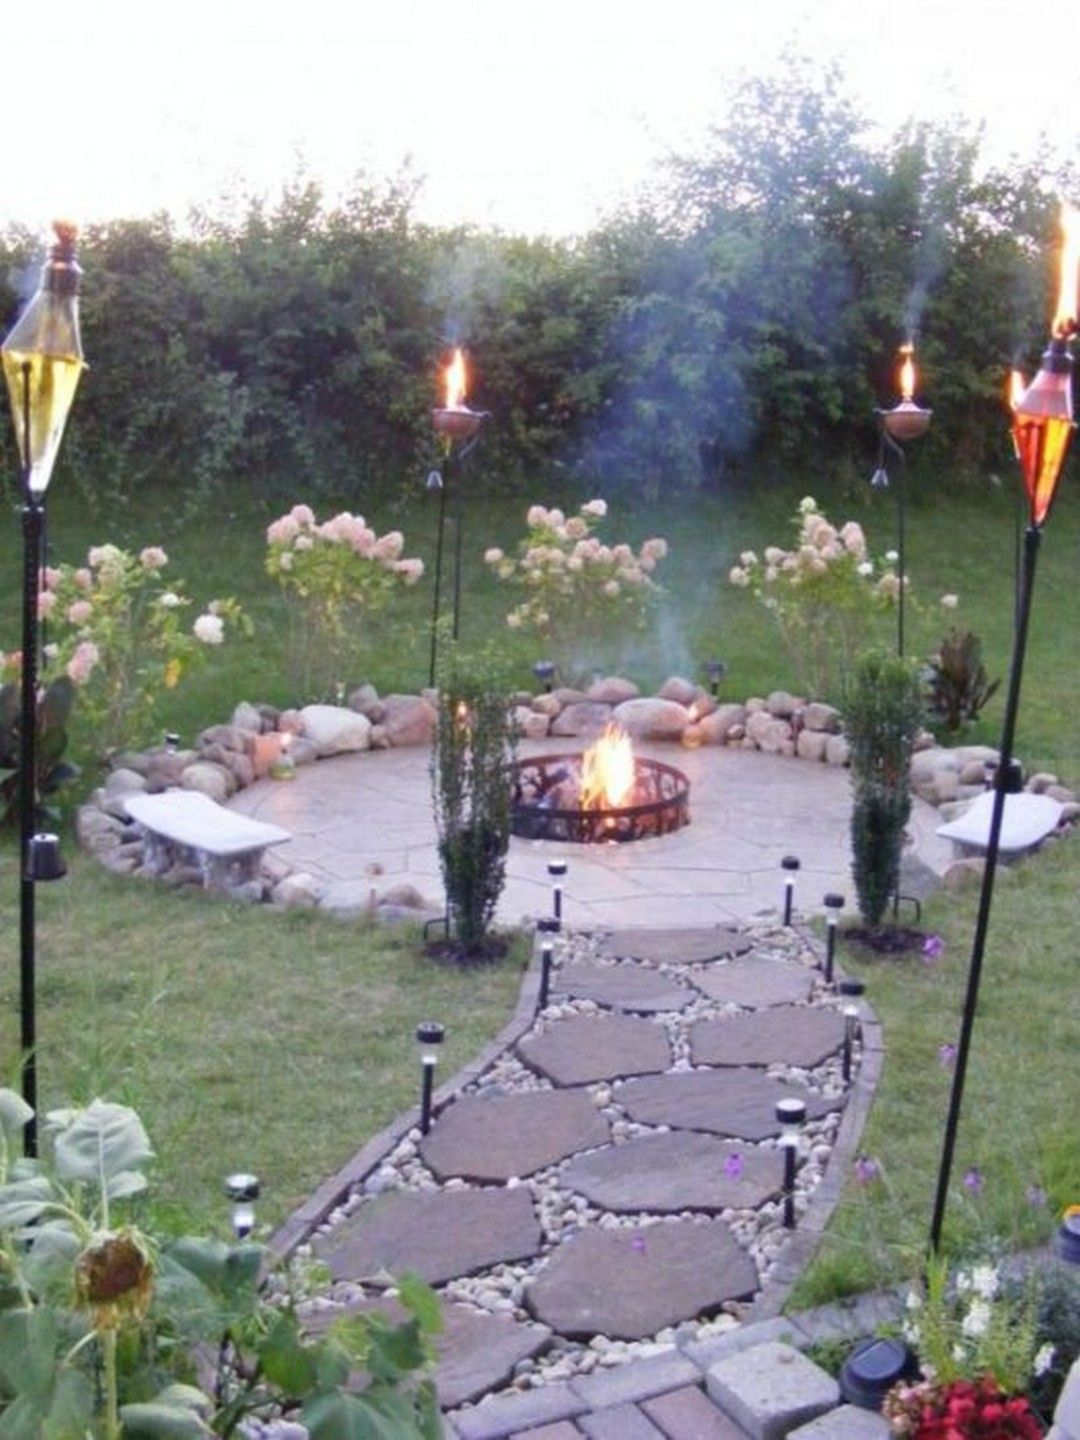 Patio ideas with fire pit on a budget - Cool 50 Fantastic Small Patio Ideas On A Budget Https Www Architecturehd Fire Pit